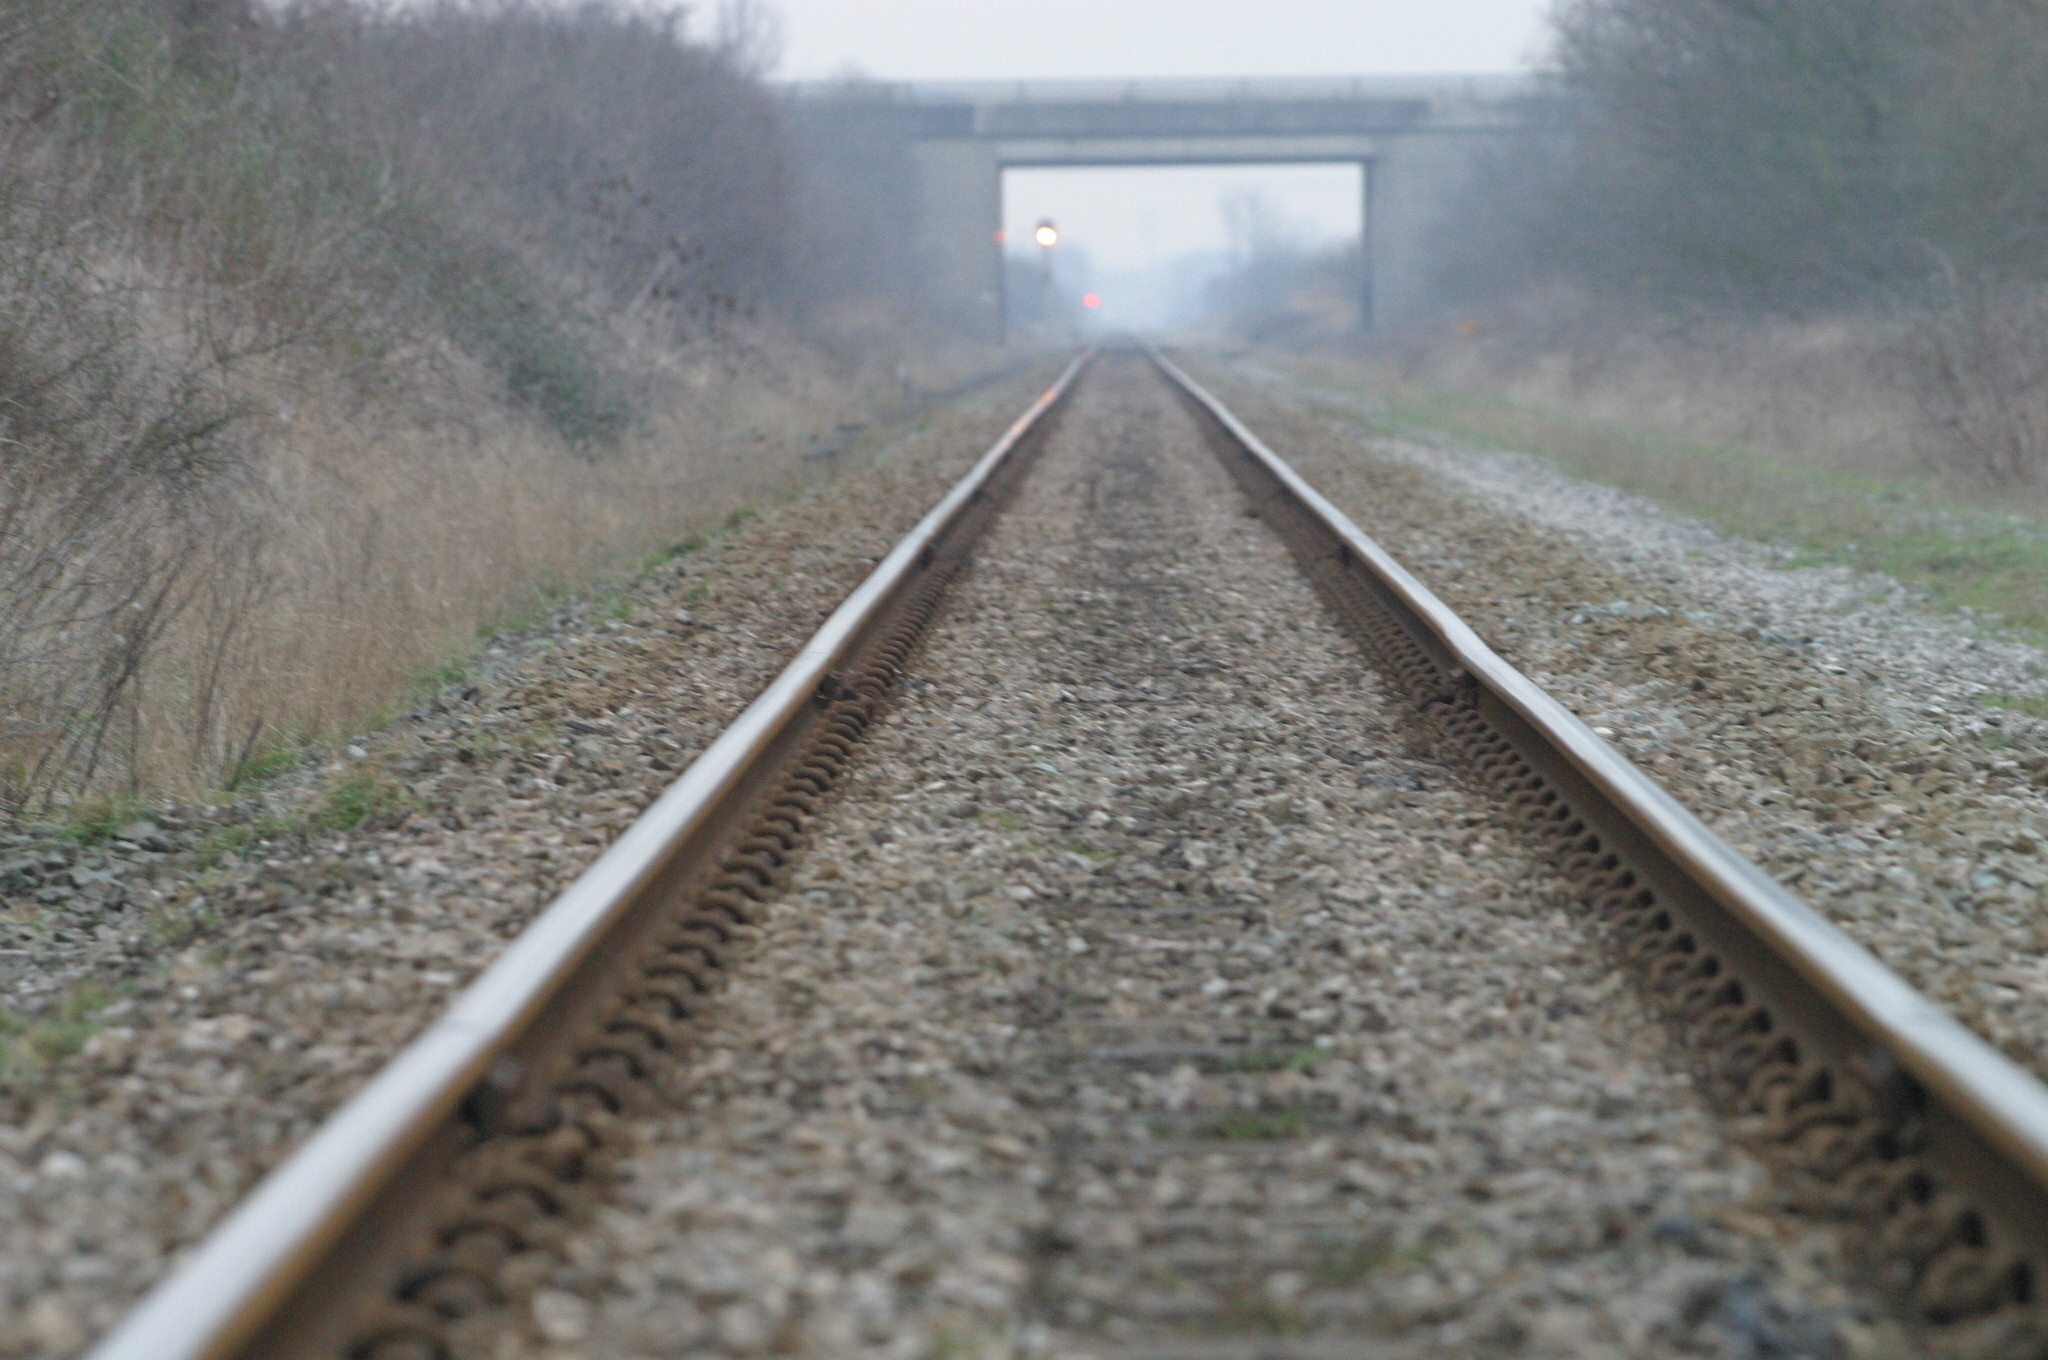 Police searched train tracks in freezing conditions